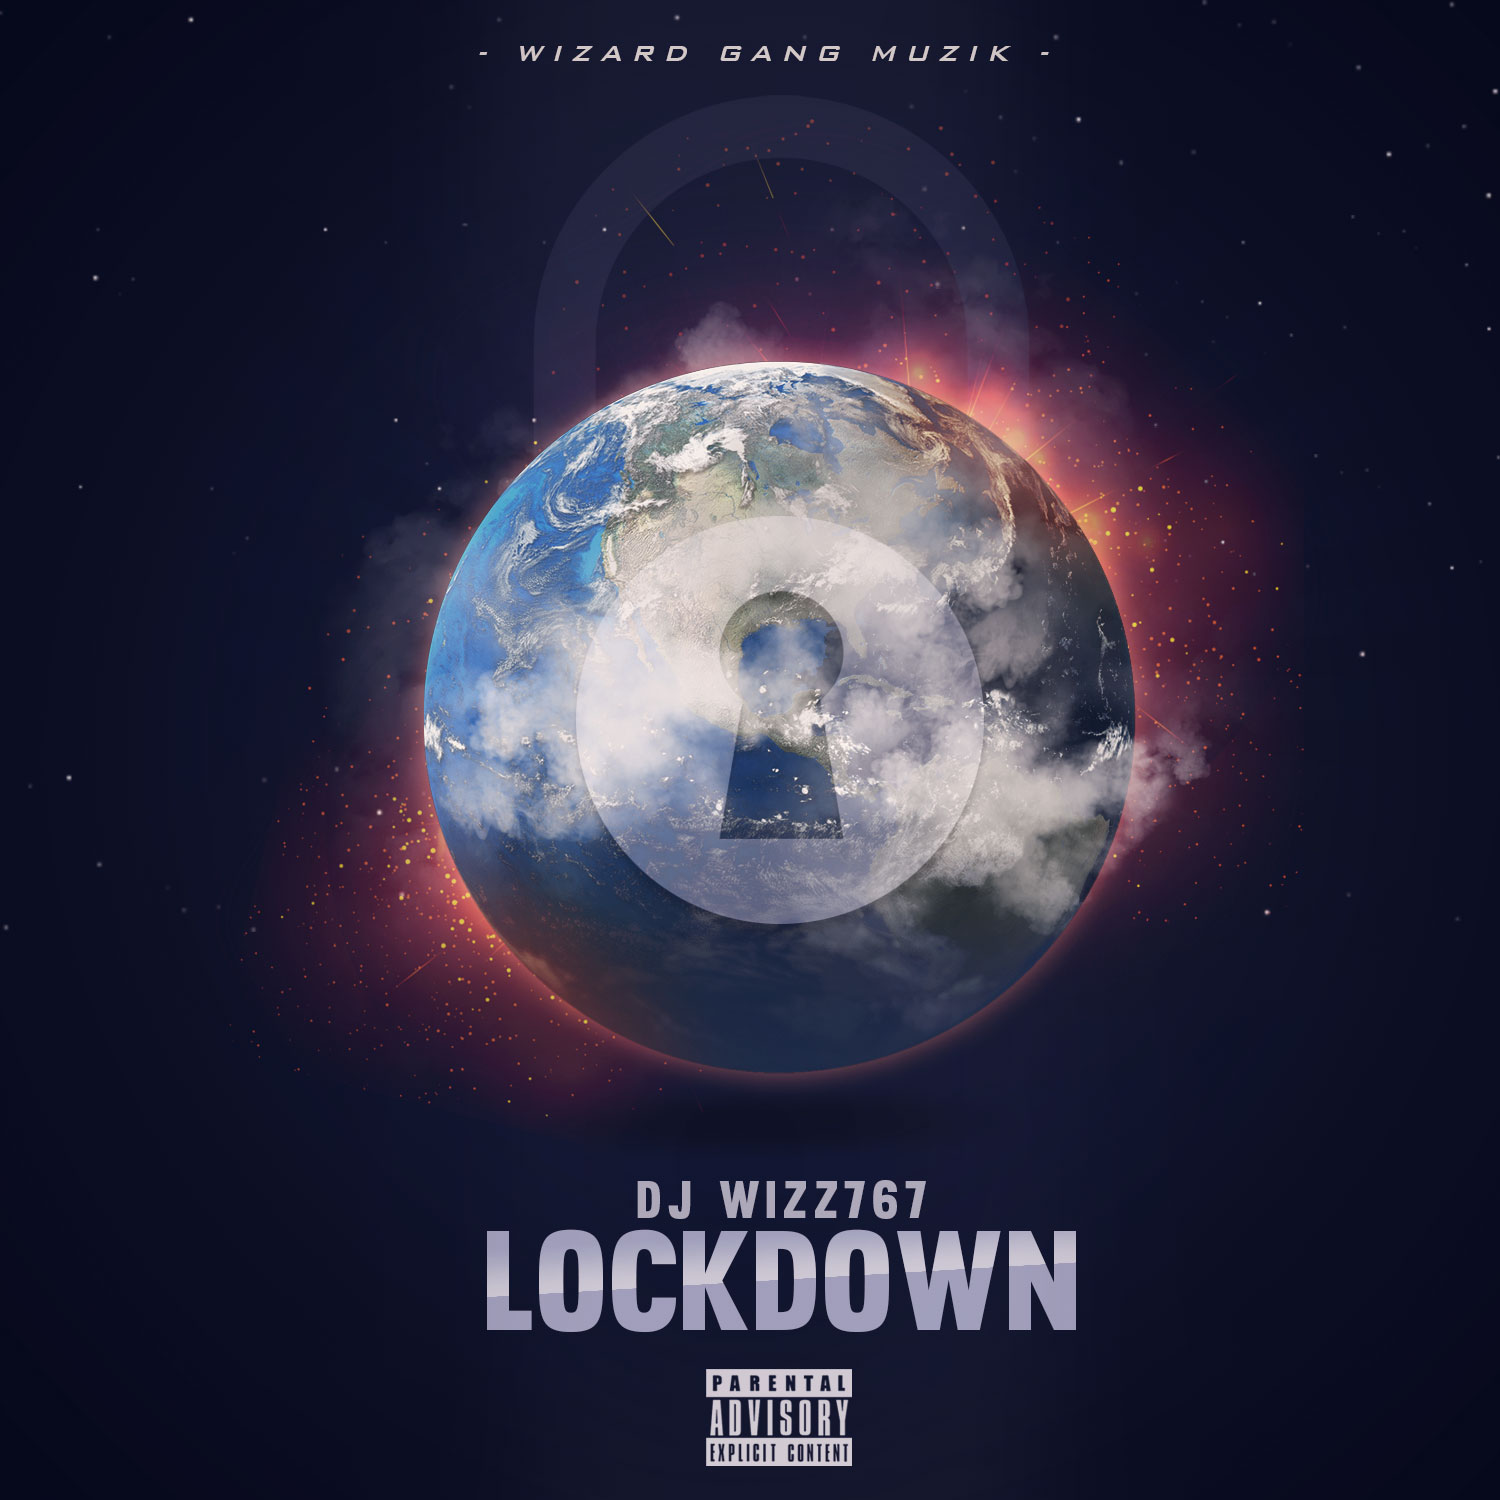 Dj Wizz767 – LOCKDOWN